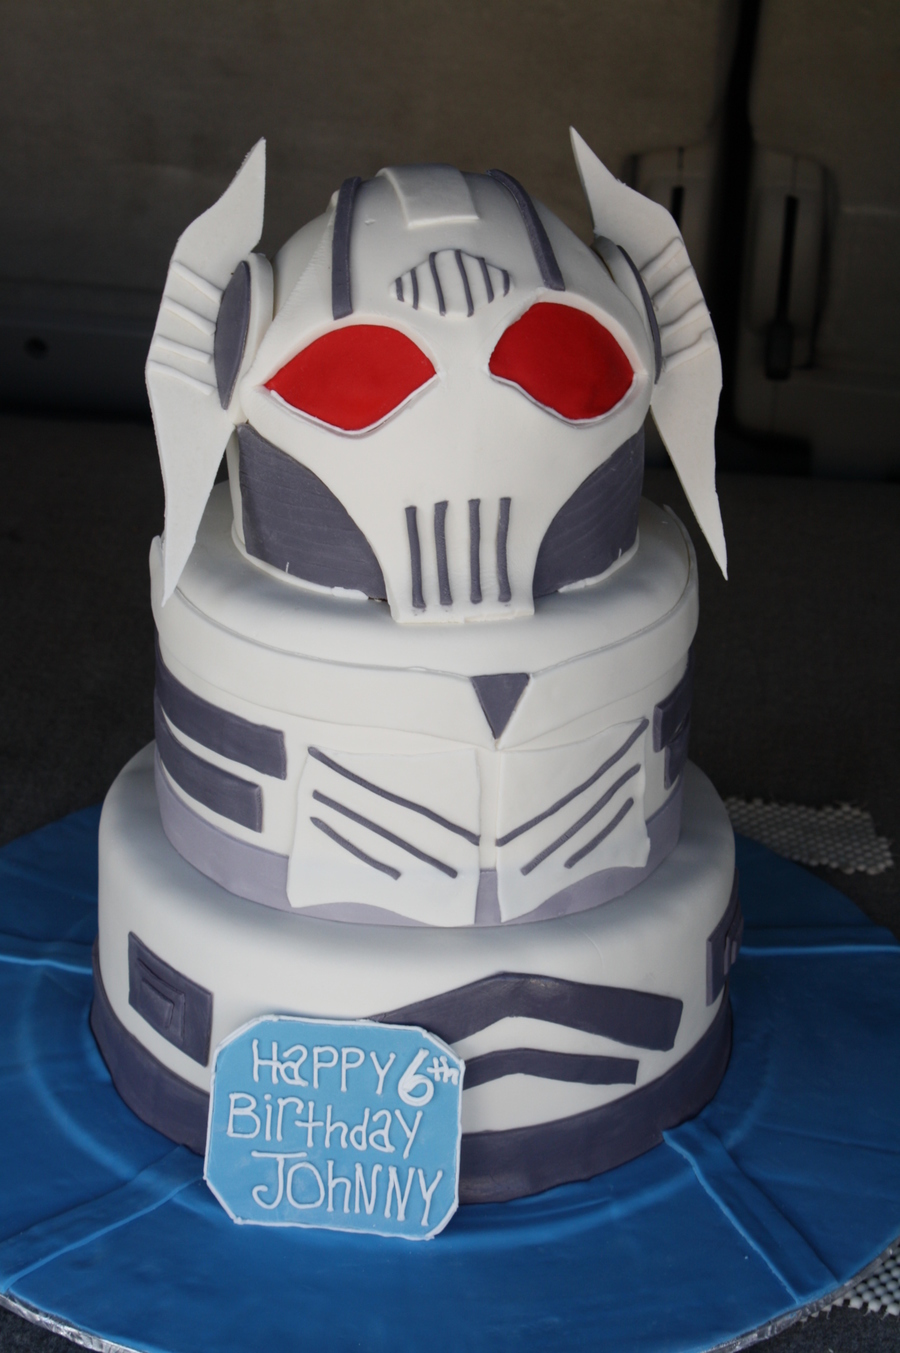 General Grievous - Star Wars  on Cake Central